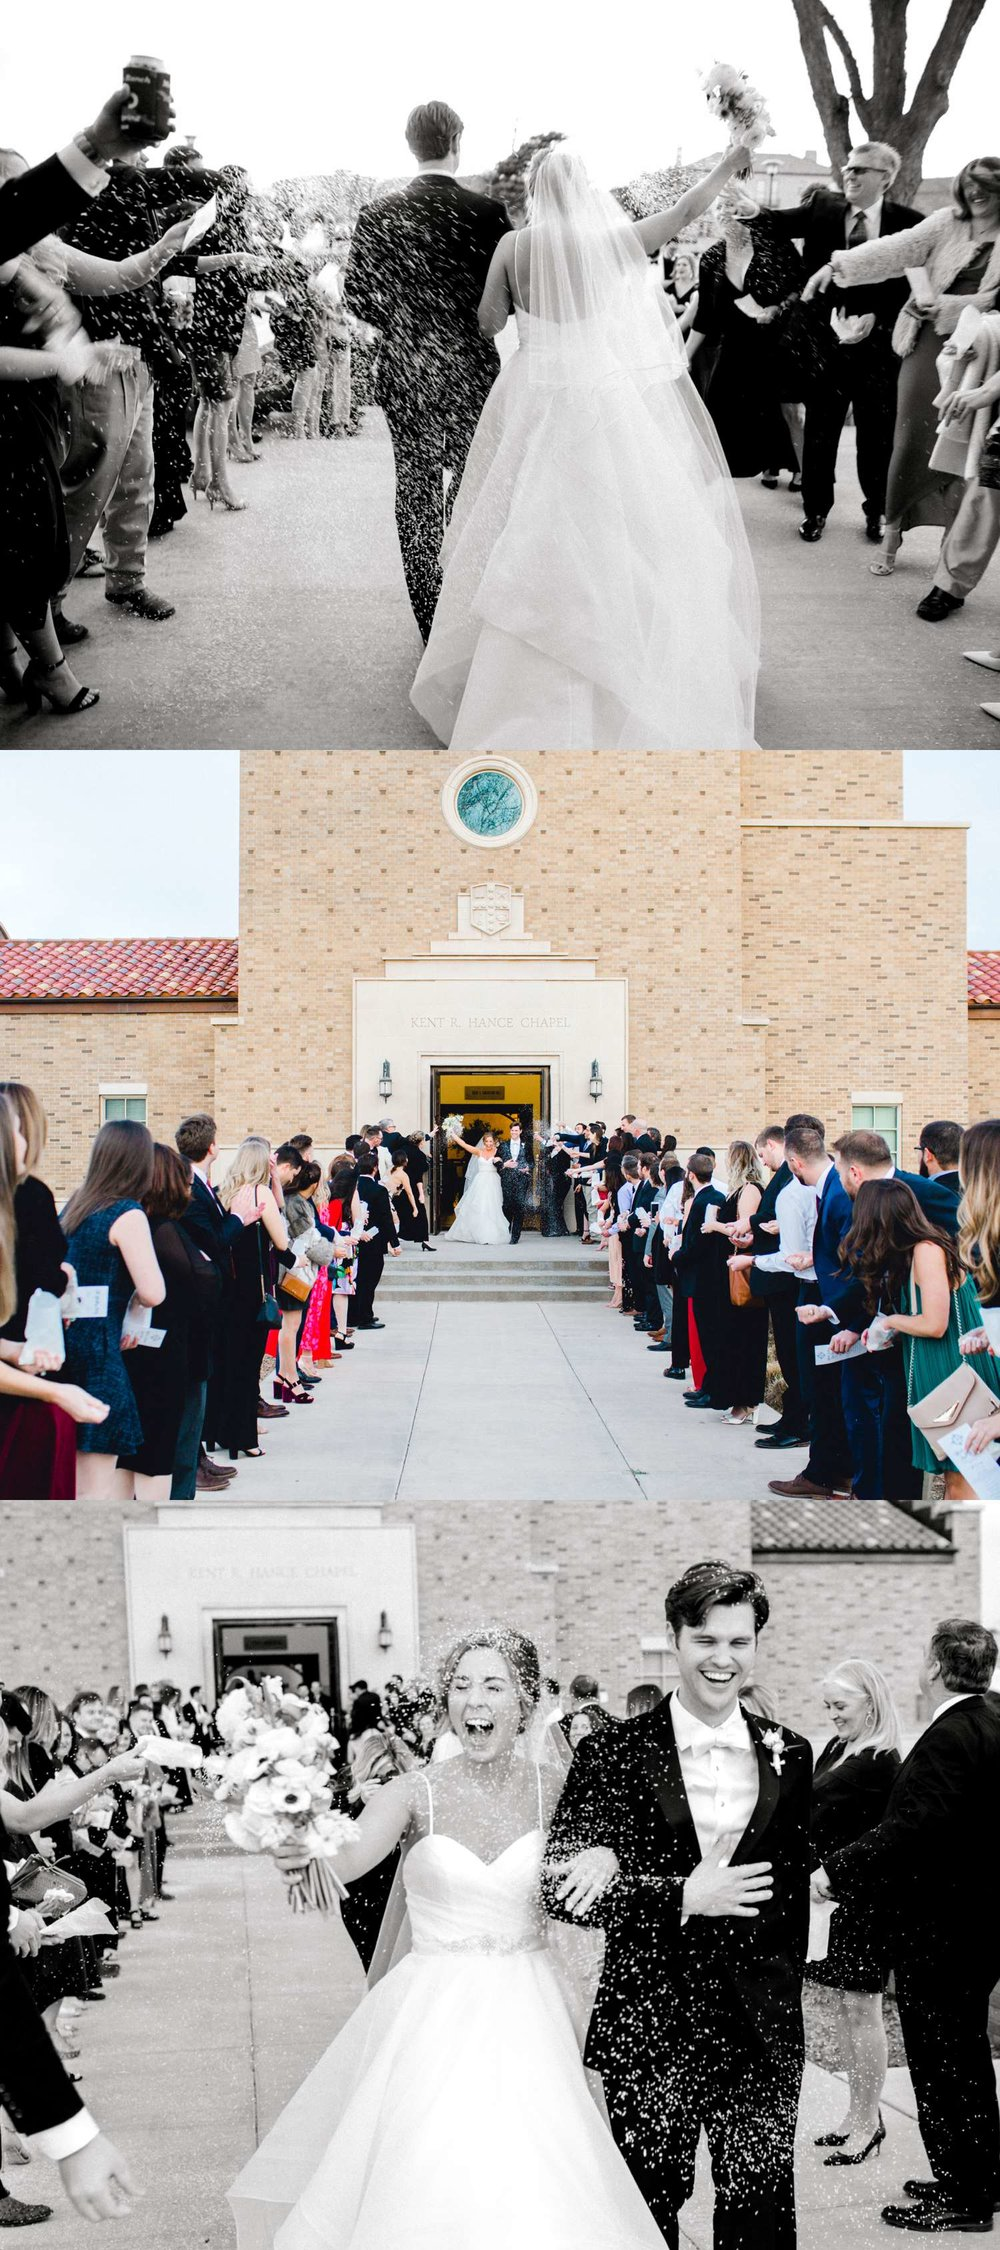 MARLEE+LLOYD+MORGAN+ALLEEJ+TEXAS+TECH+MERKET+ALUMNI+WEDDINGS+LUBBOCK+WEST+TABLE+CLASSIC+SPAIN_0183.jpg